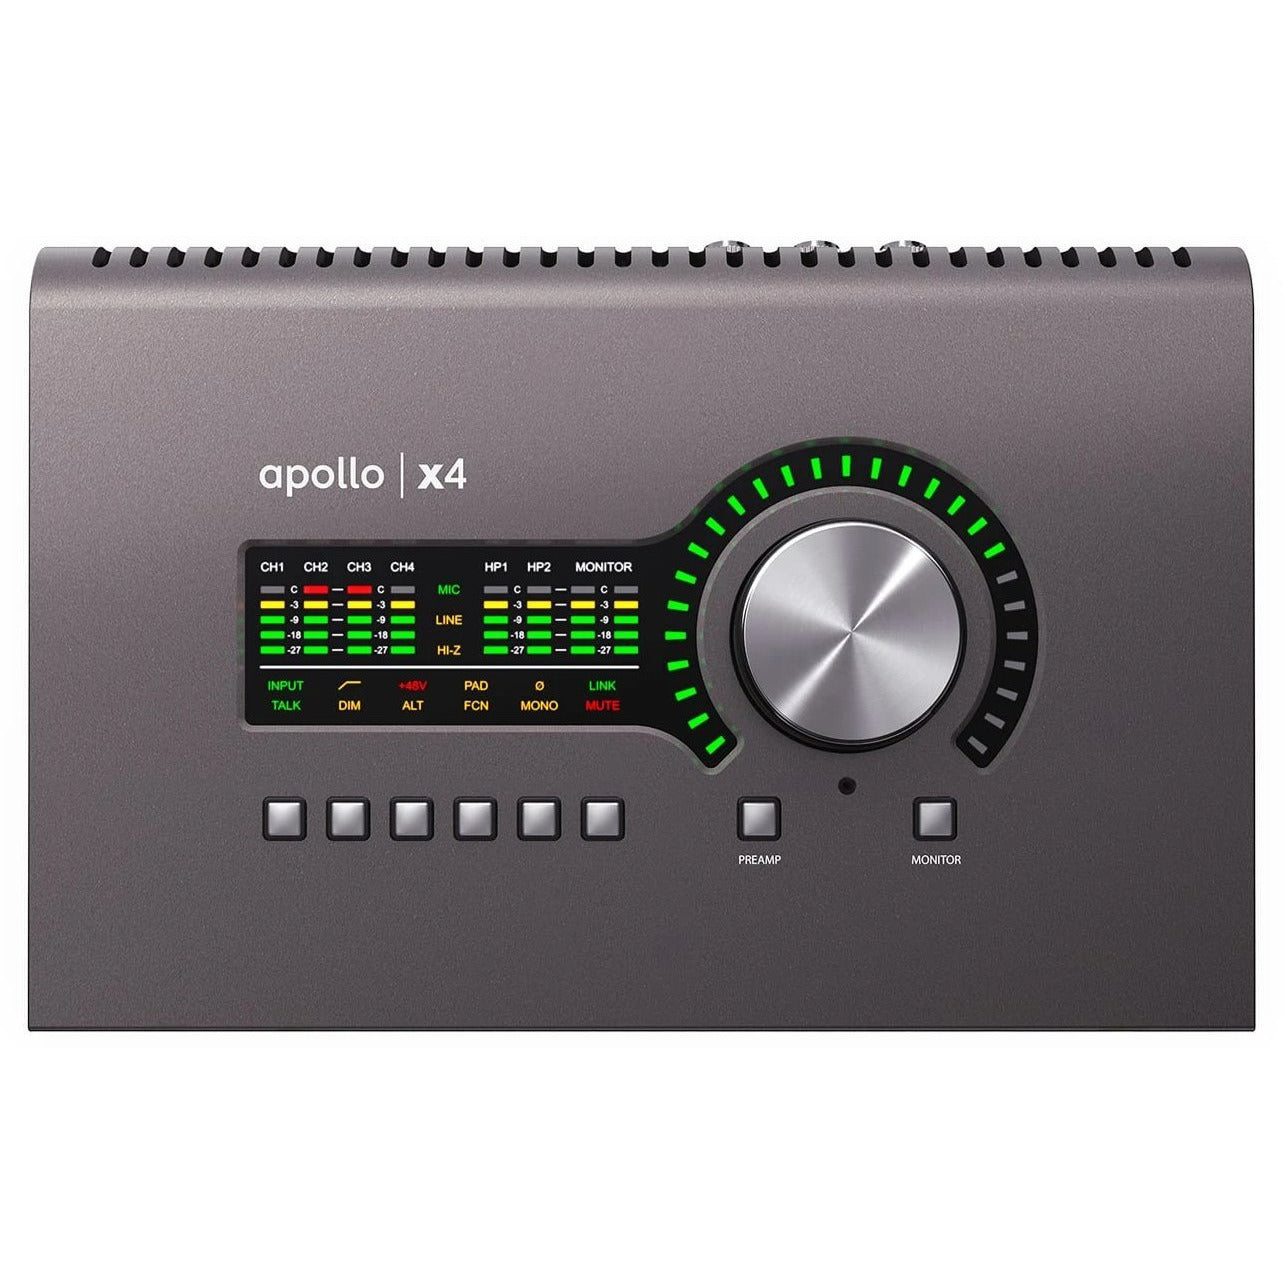 Apollo x4 w/ QUAD Core Processing